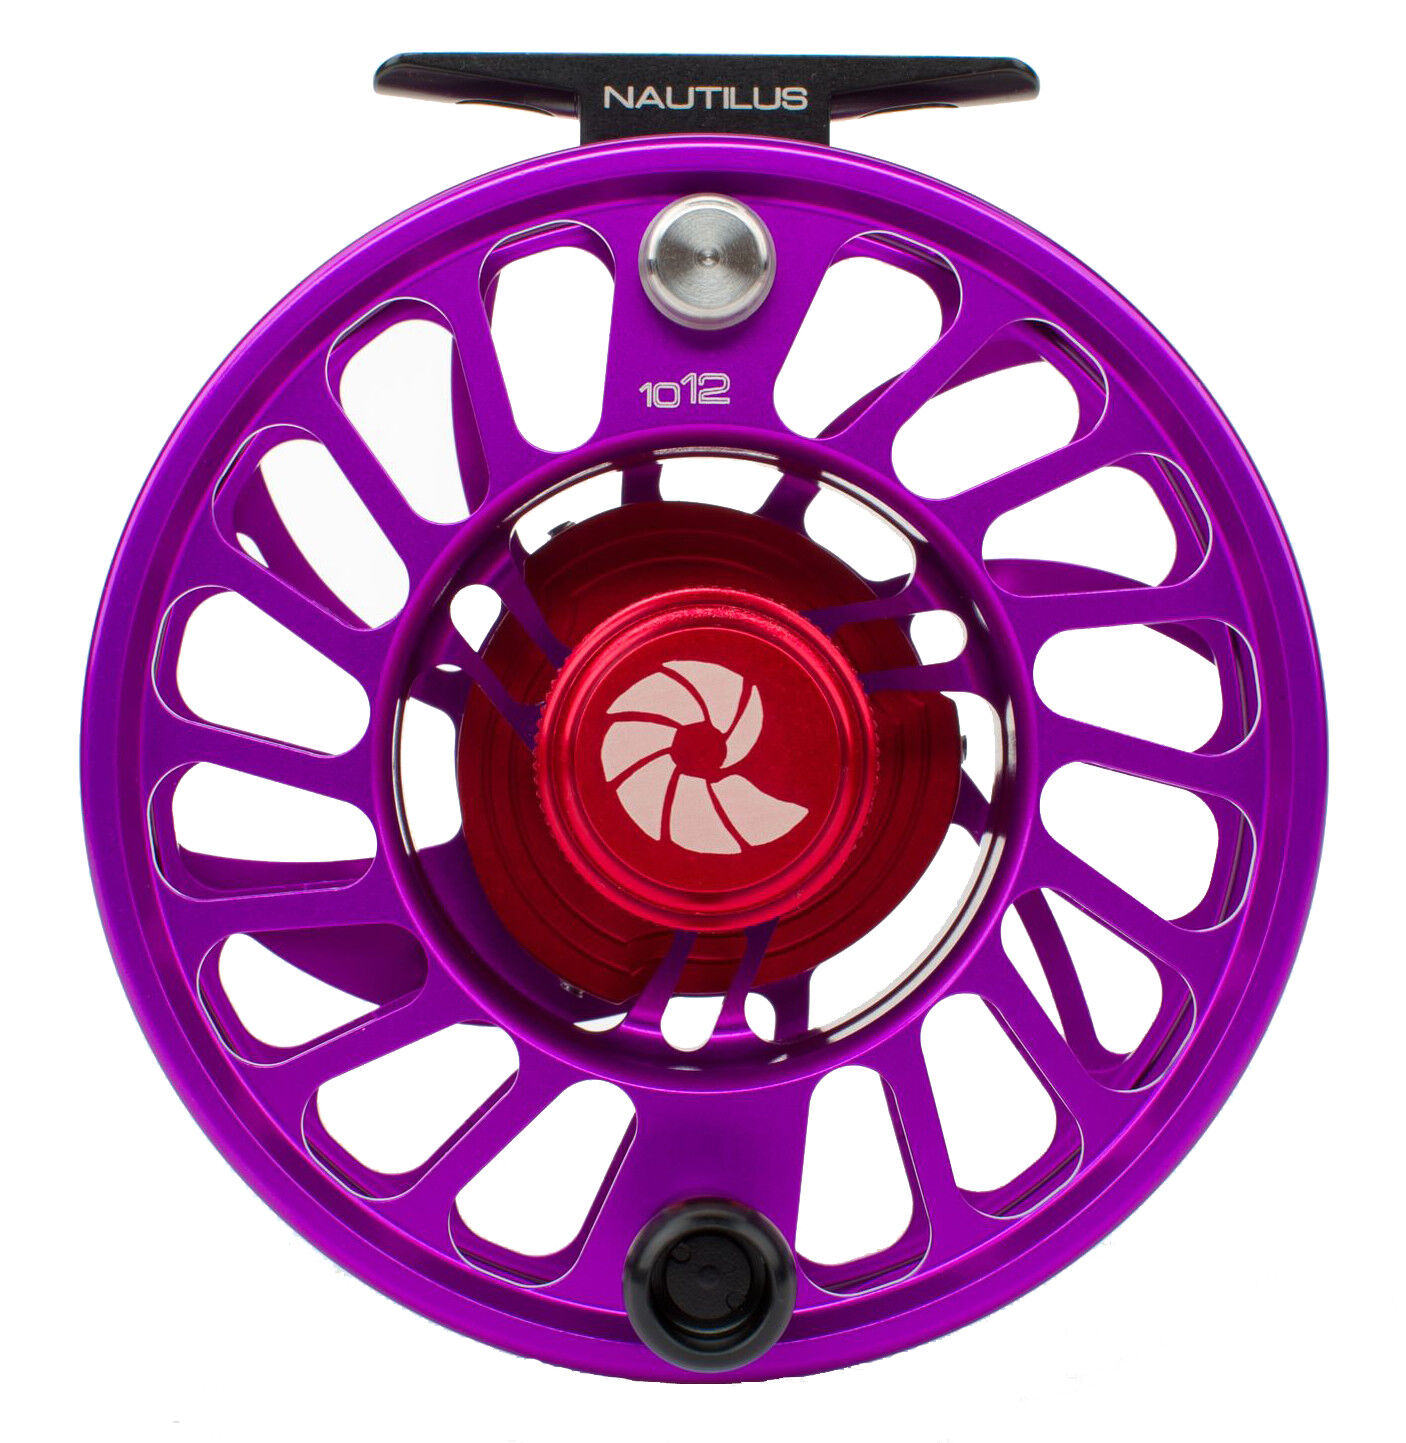 Nautilus CCF-X2 10 12 Fly Fishing Reel - purple (10-12 WT) NEW  - Free US Ship